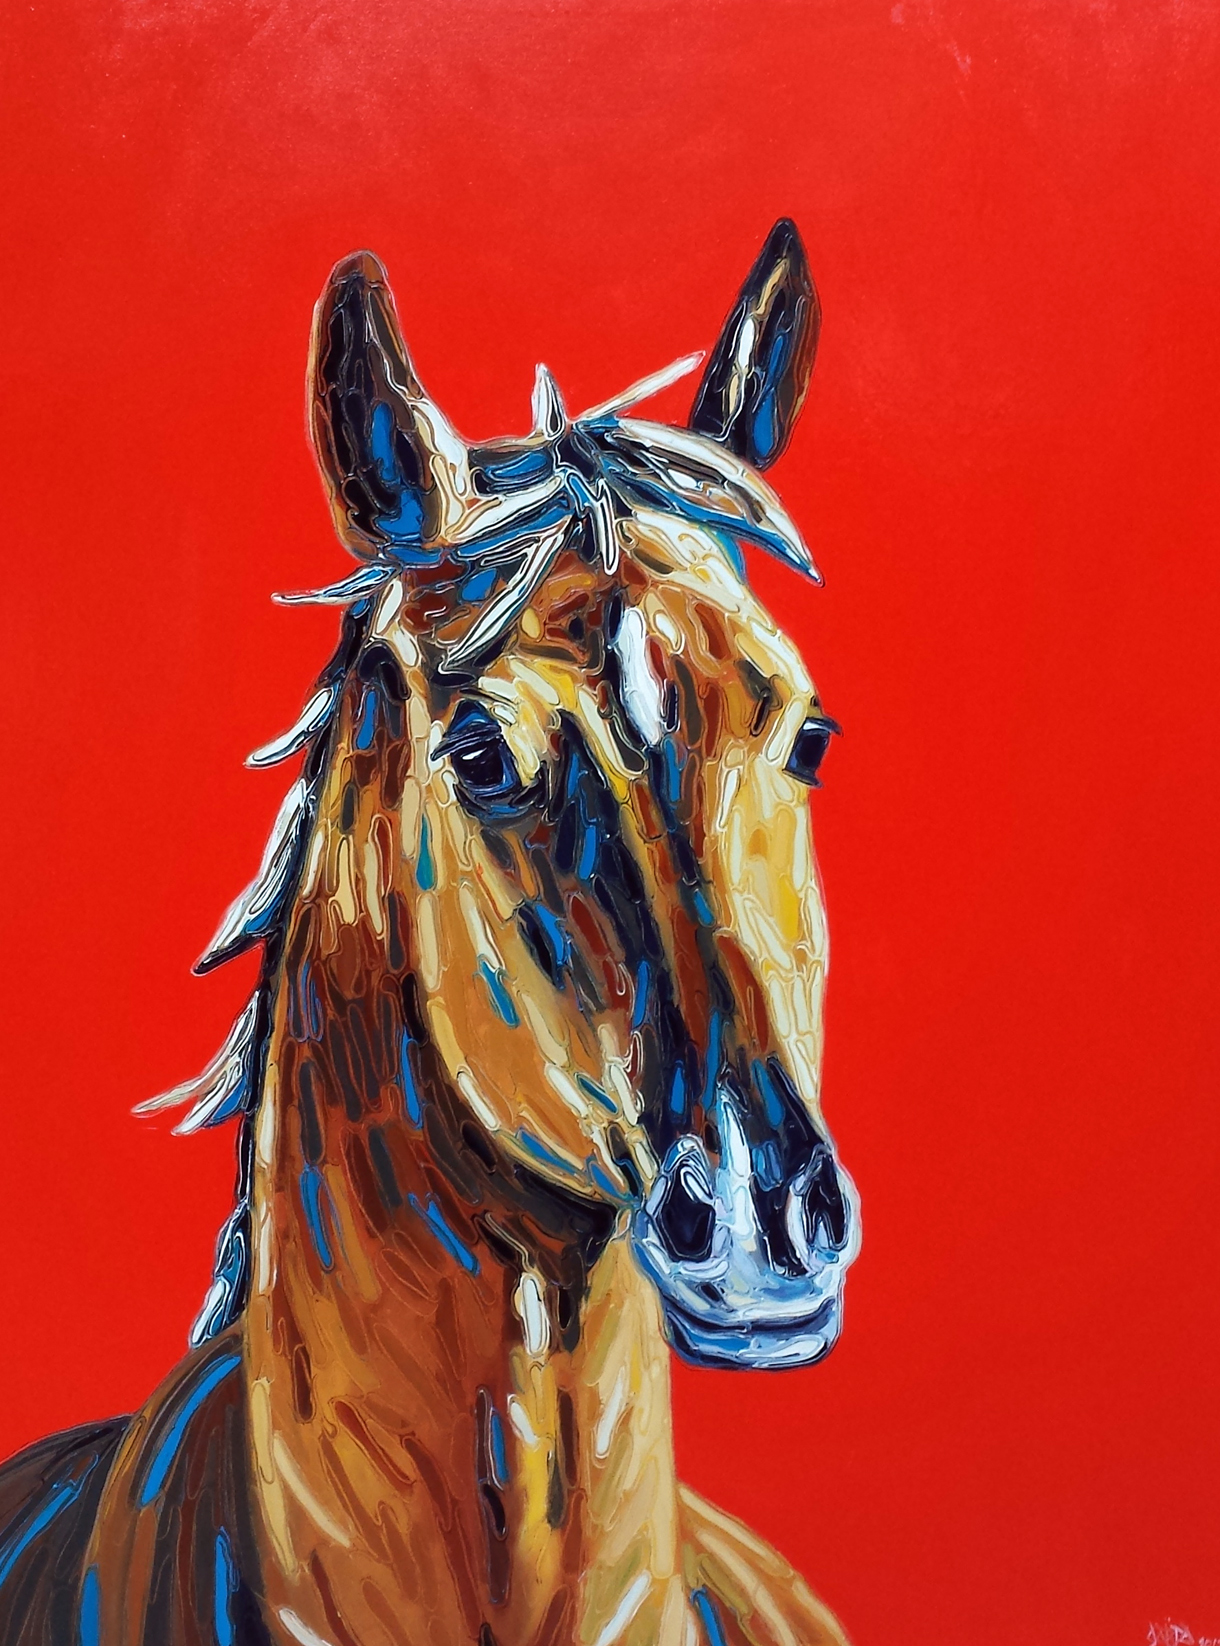 Horse on Red - Oil on Canvas - 28x42